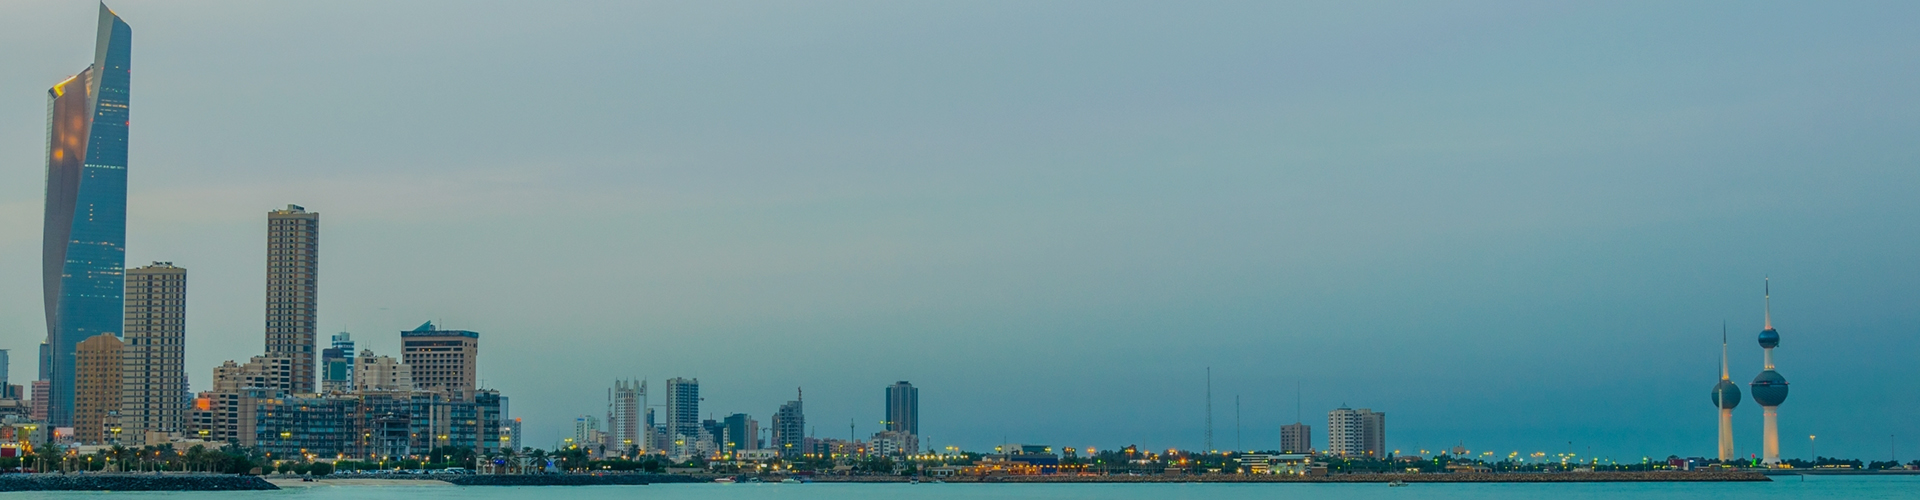 Landmark photograph of Kuwait